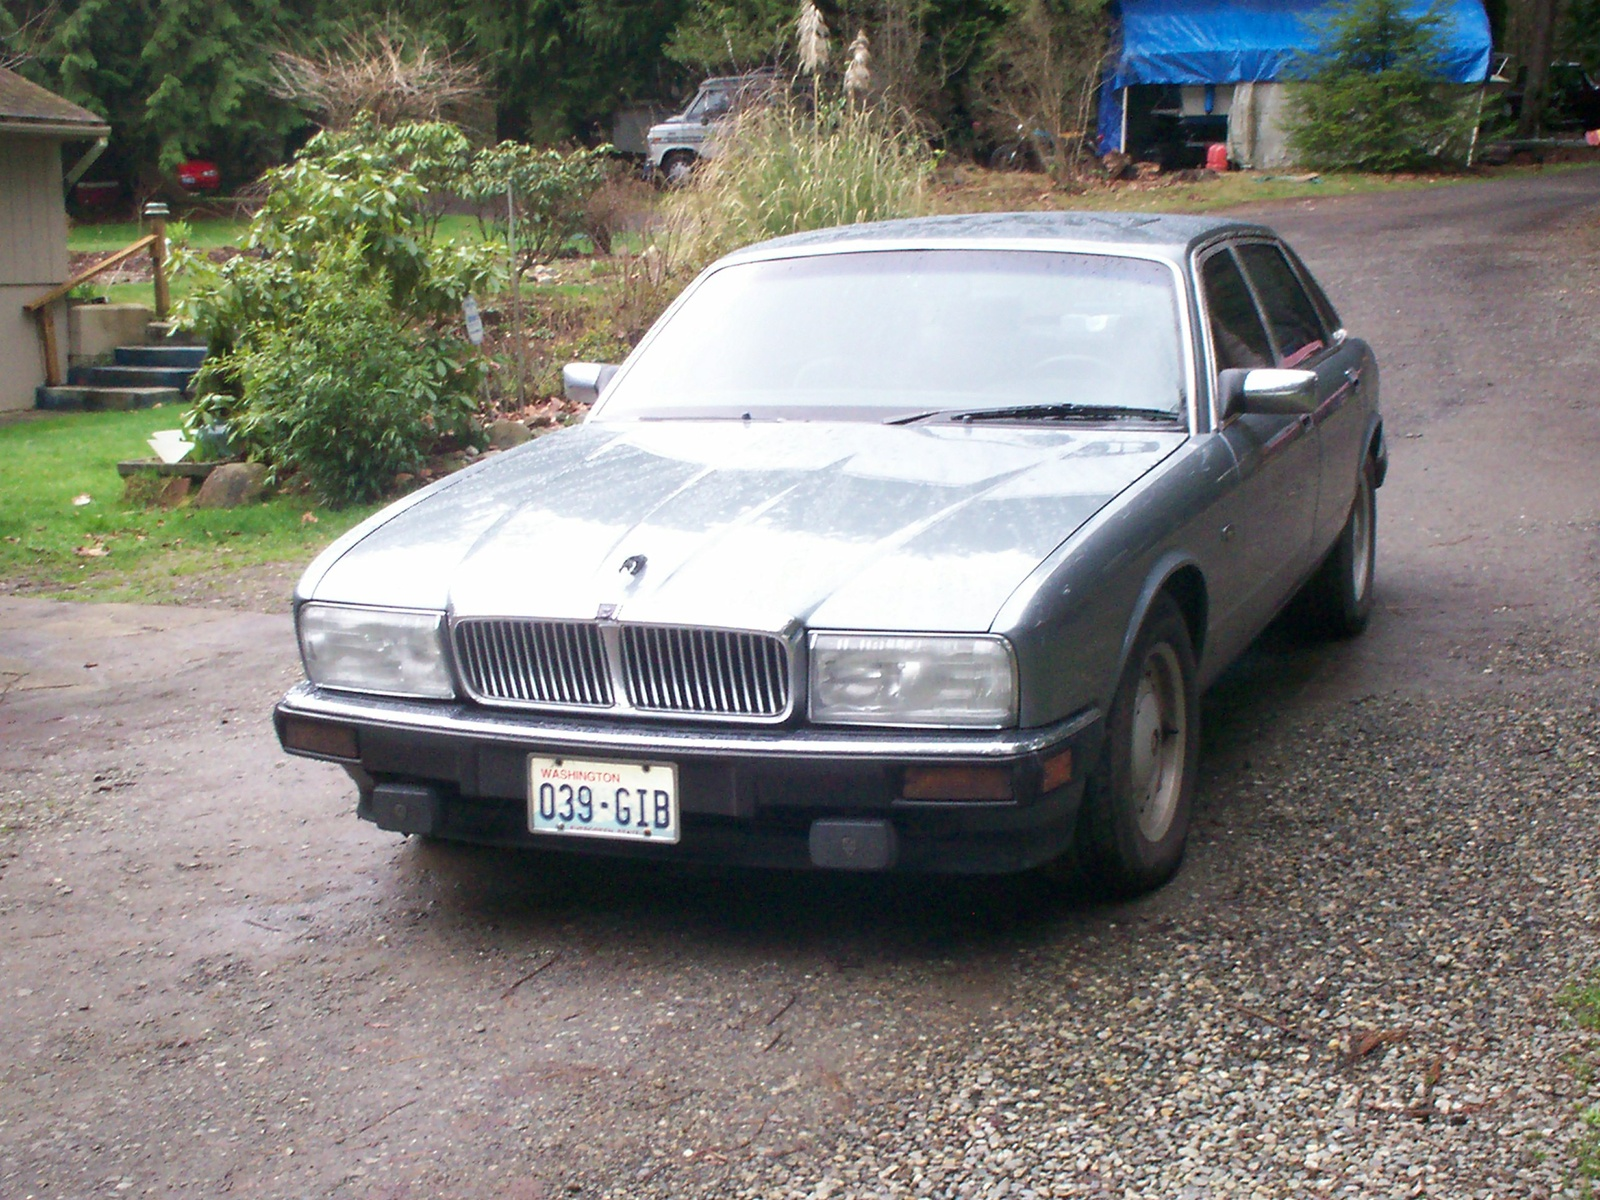 1991 Jaguar Xj-series #4